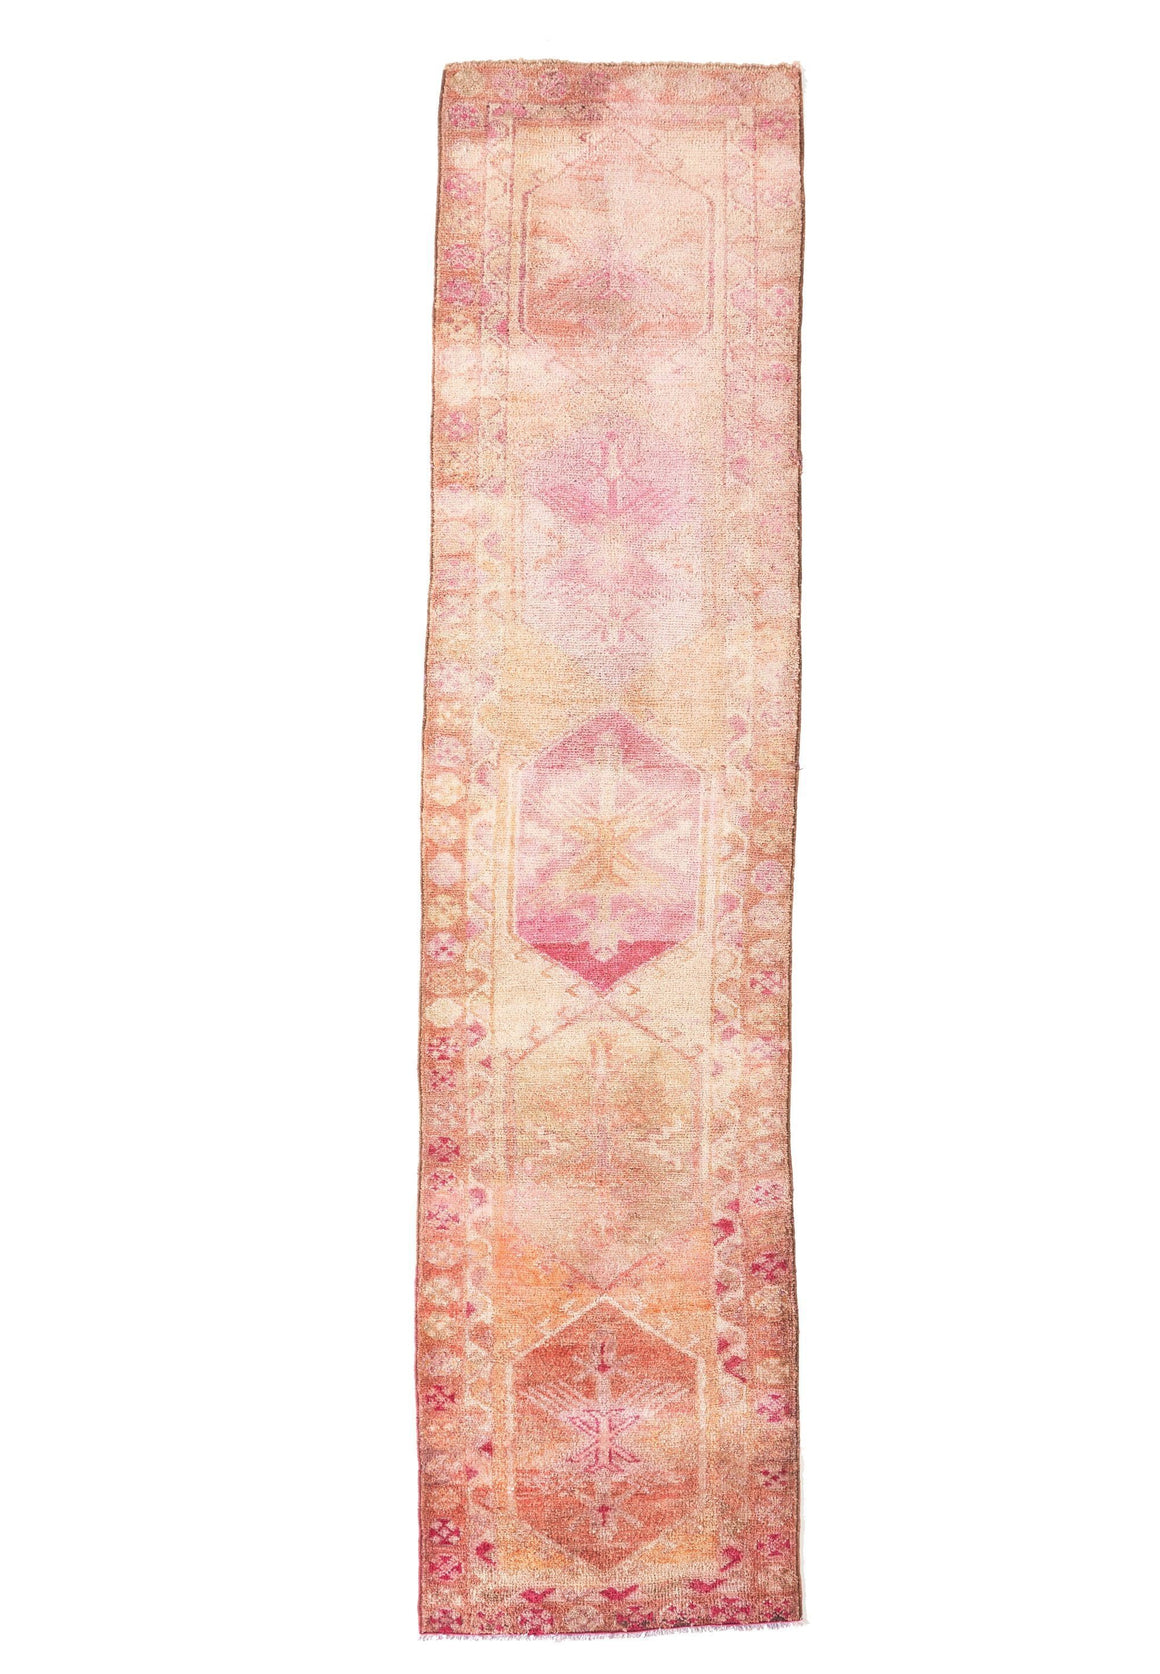 'Dreamscape' Turkish Runner Rug - 3' x 12'4'' - Canary Lane - Curated Textiles